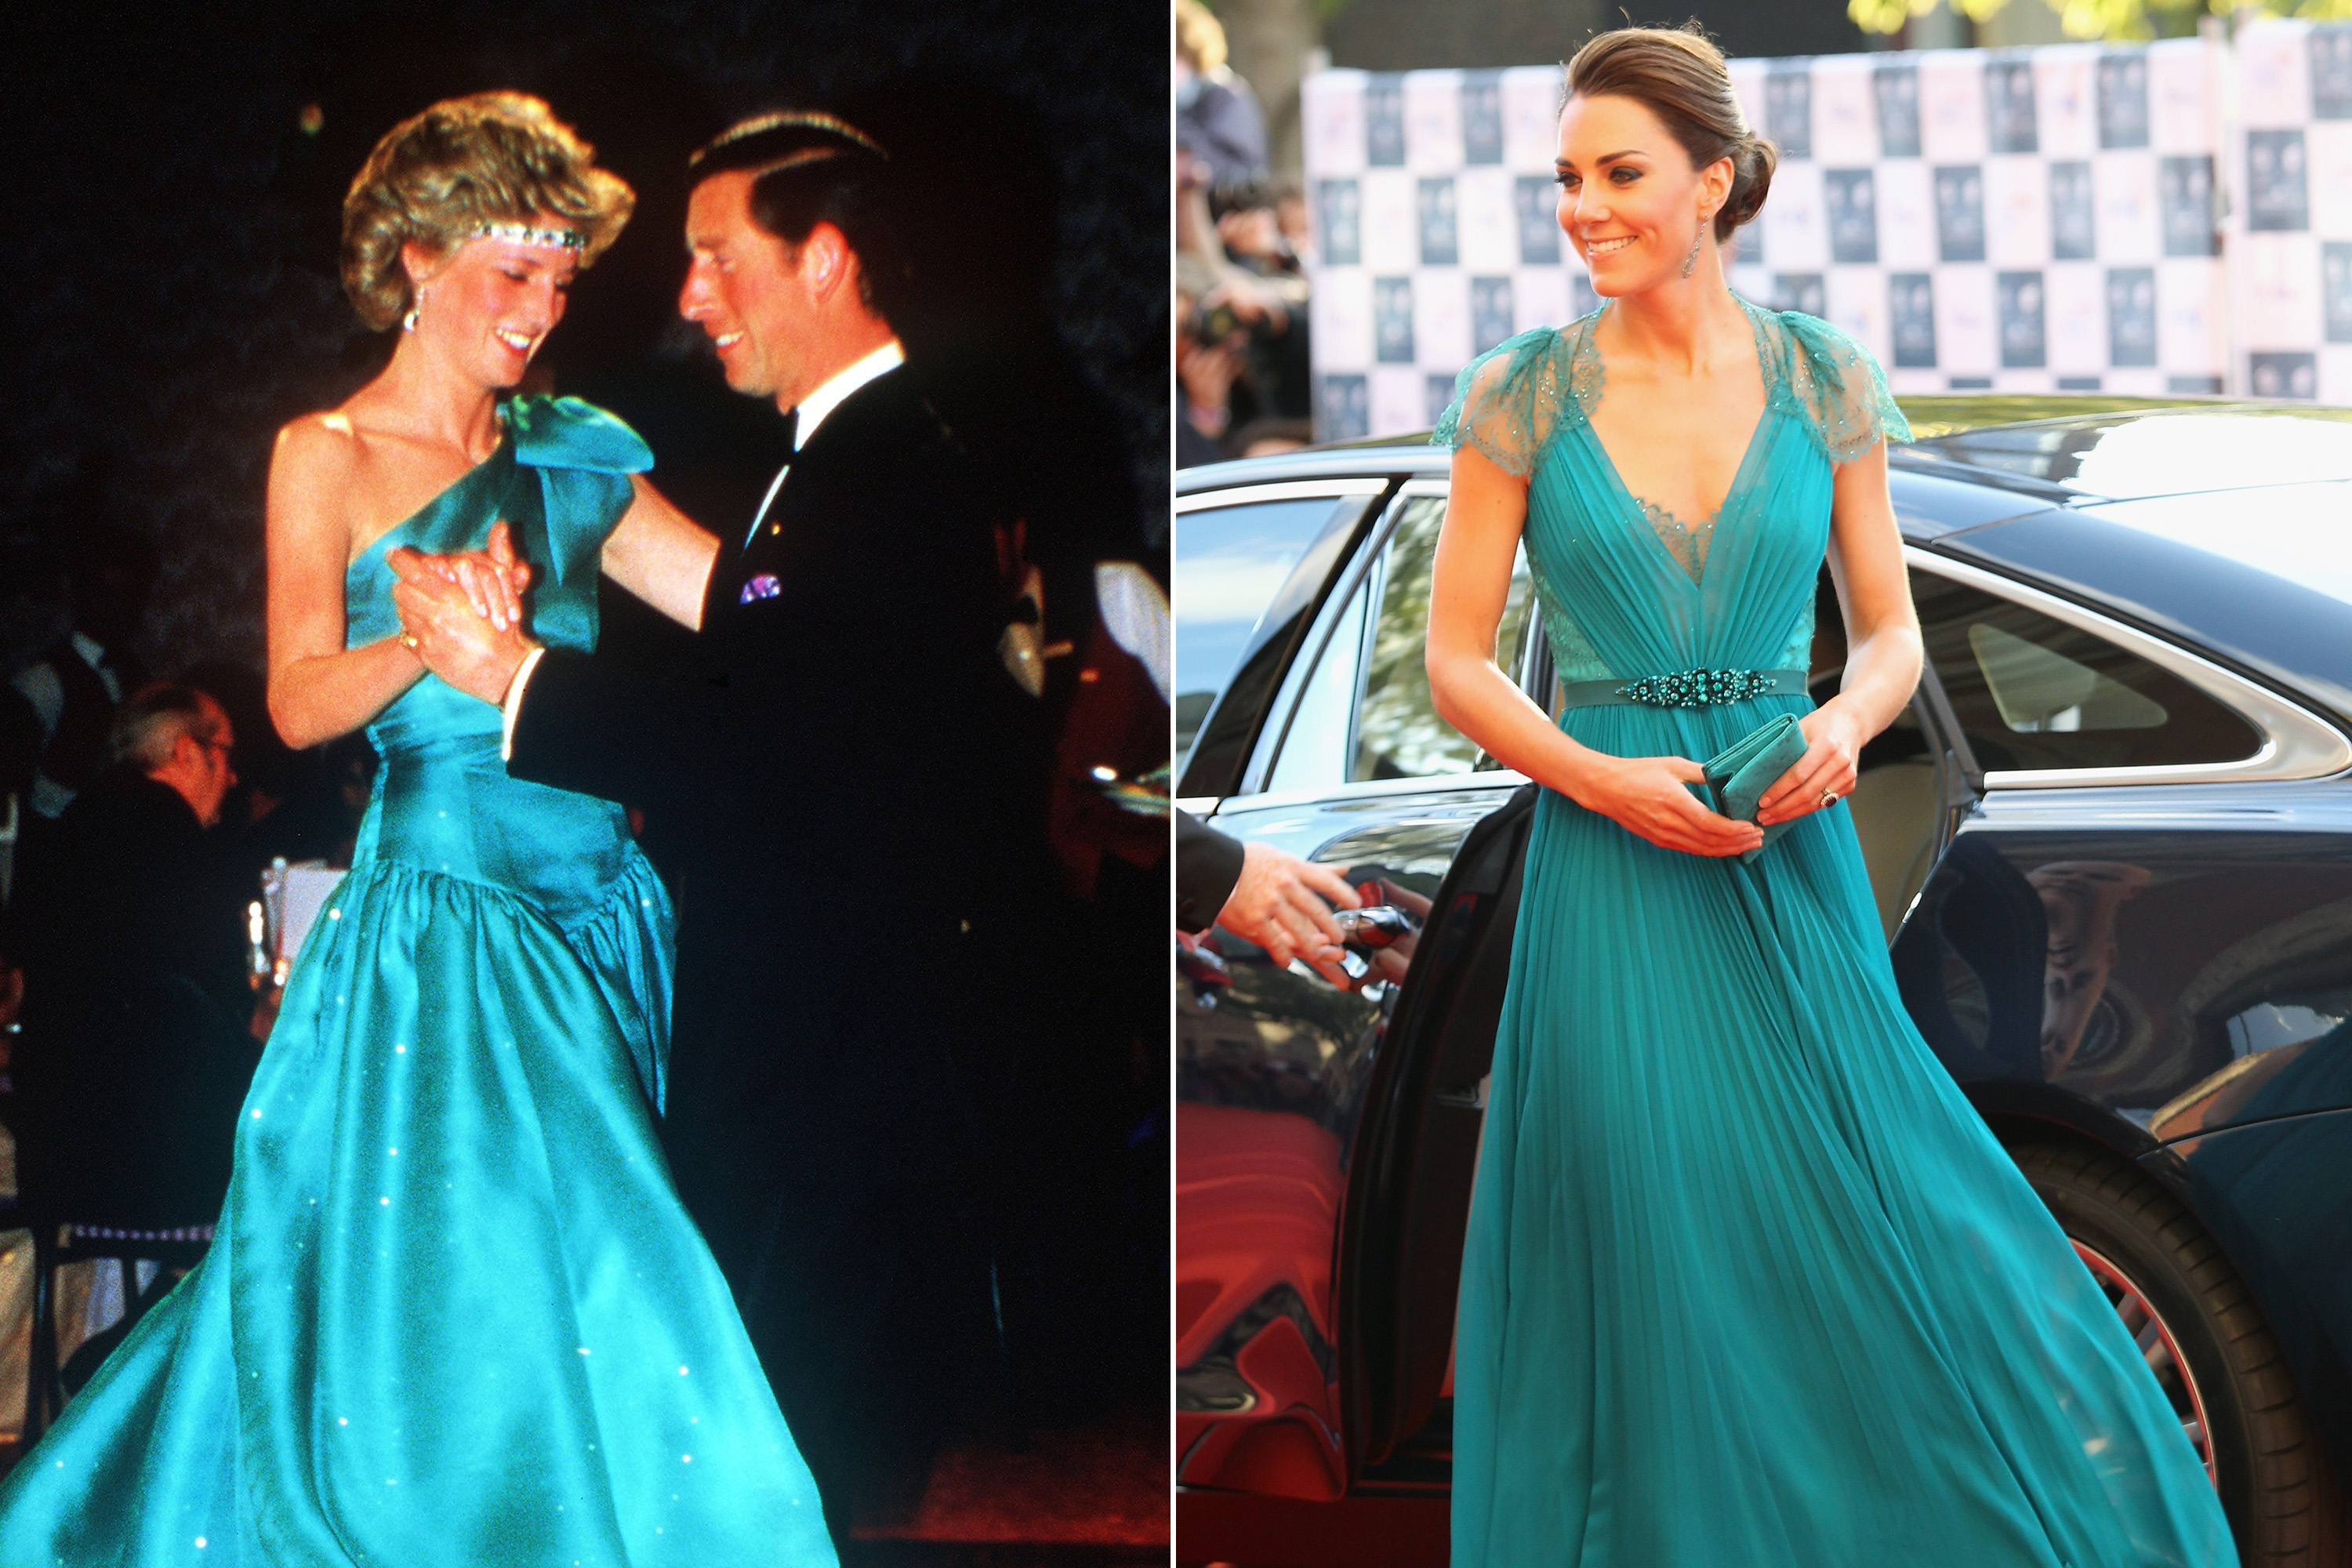 Formal wear got a vibrant update for both Diana and Kate in jewel-toned teal.